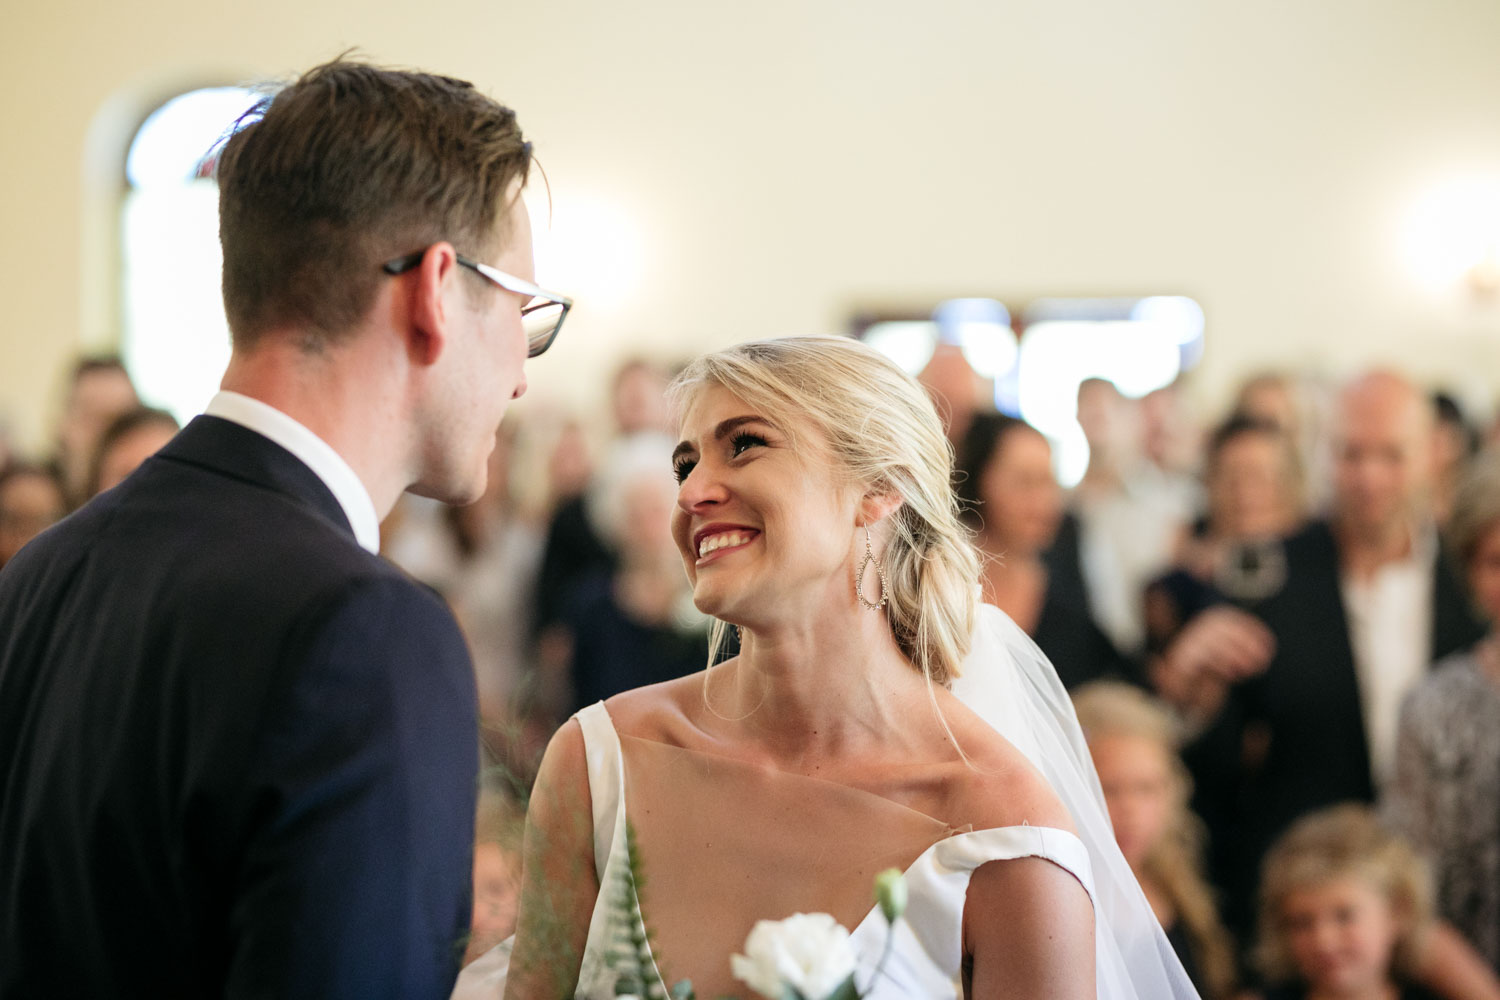 Emotional Candid Wedding Moment At Top Of Aisle Between Bride And Groom